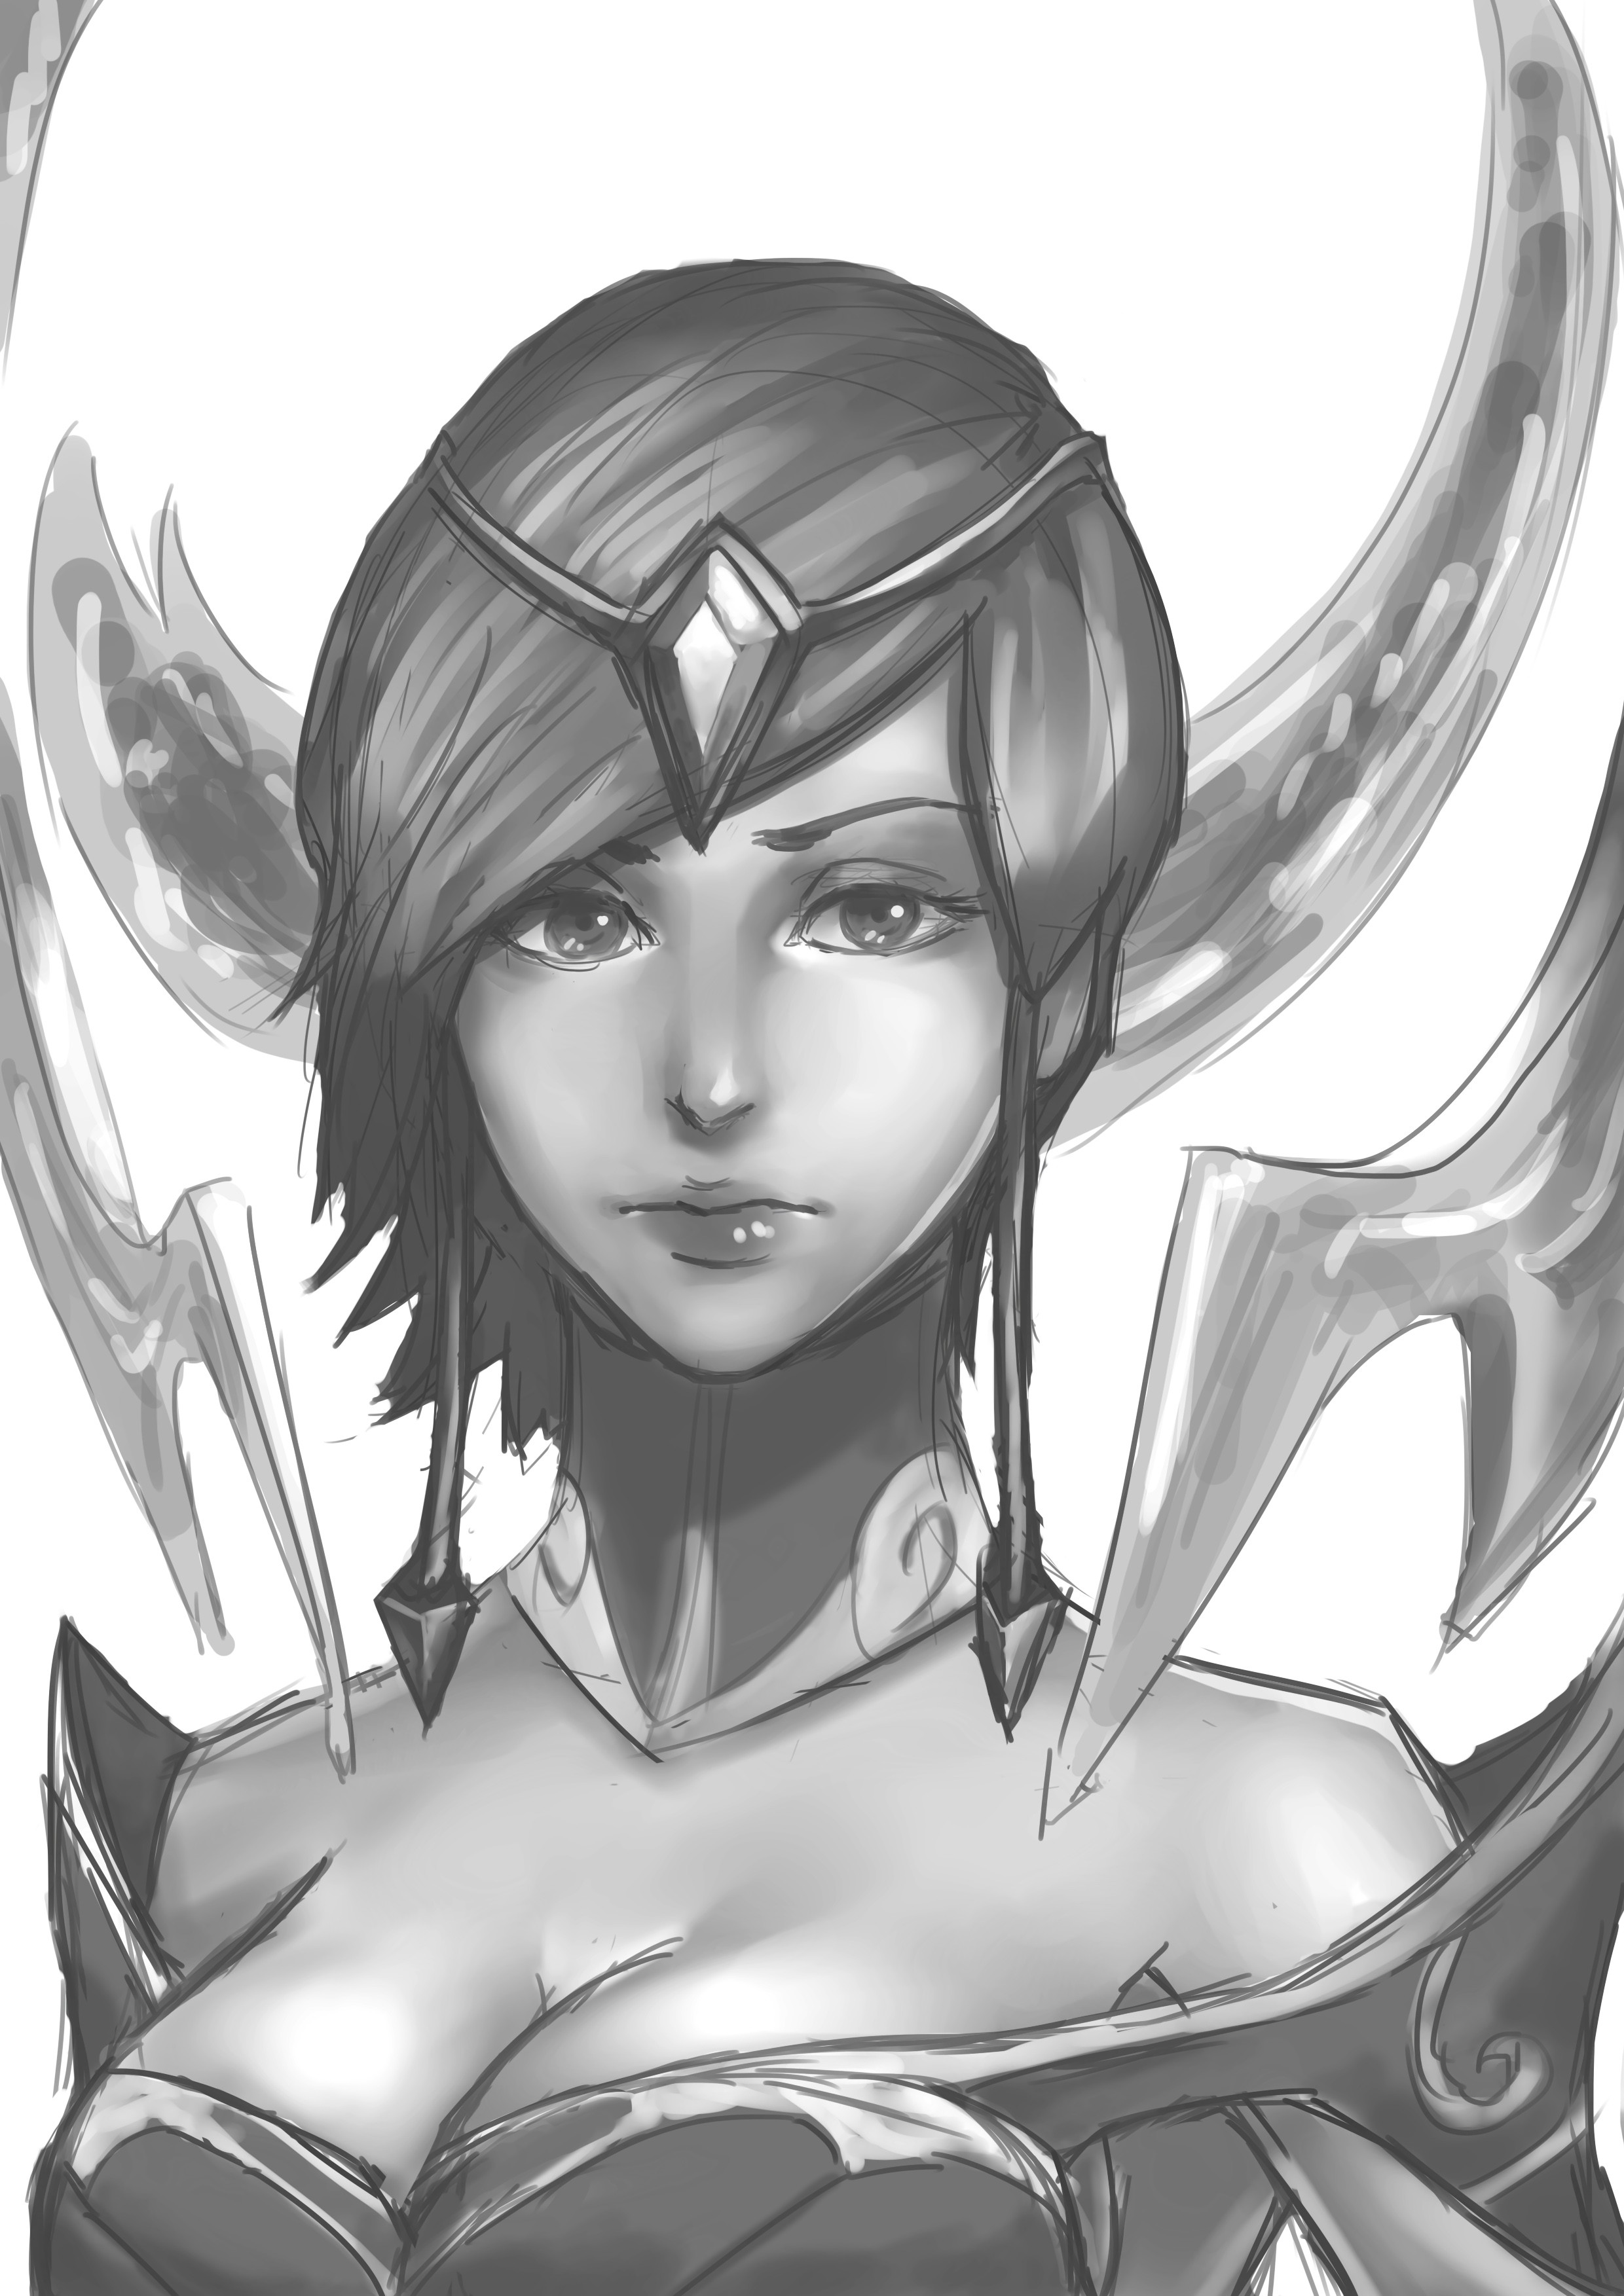 Karma Wallpapers Fan Arts League Of Legends Lol Stats High quality league of legends inspired art prints by independent artists and designers from around the world. lol stats